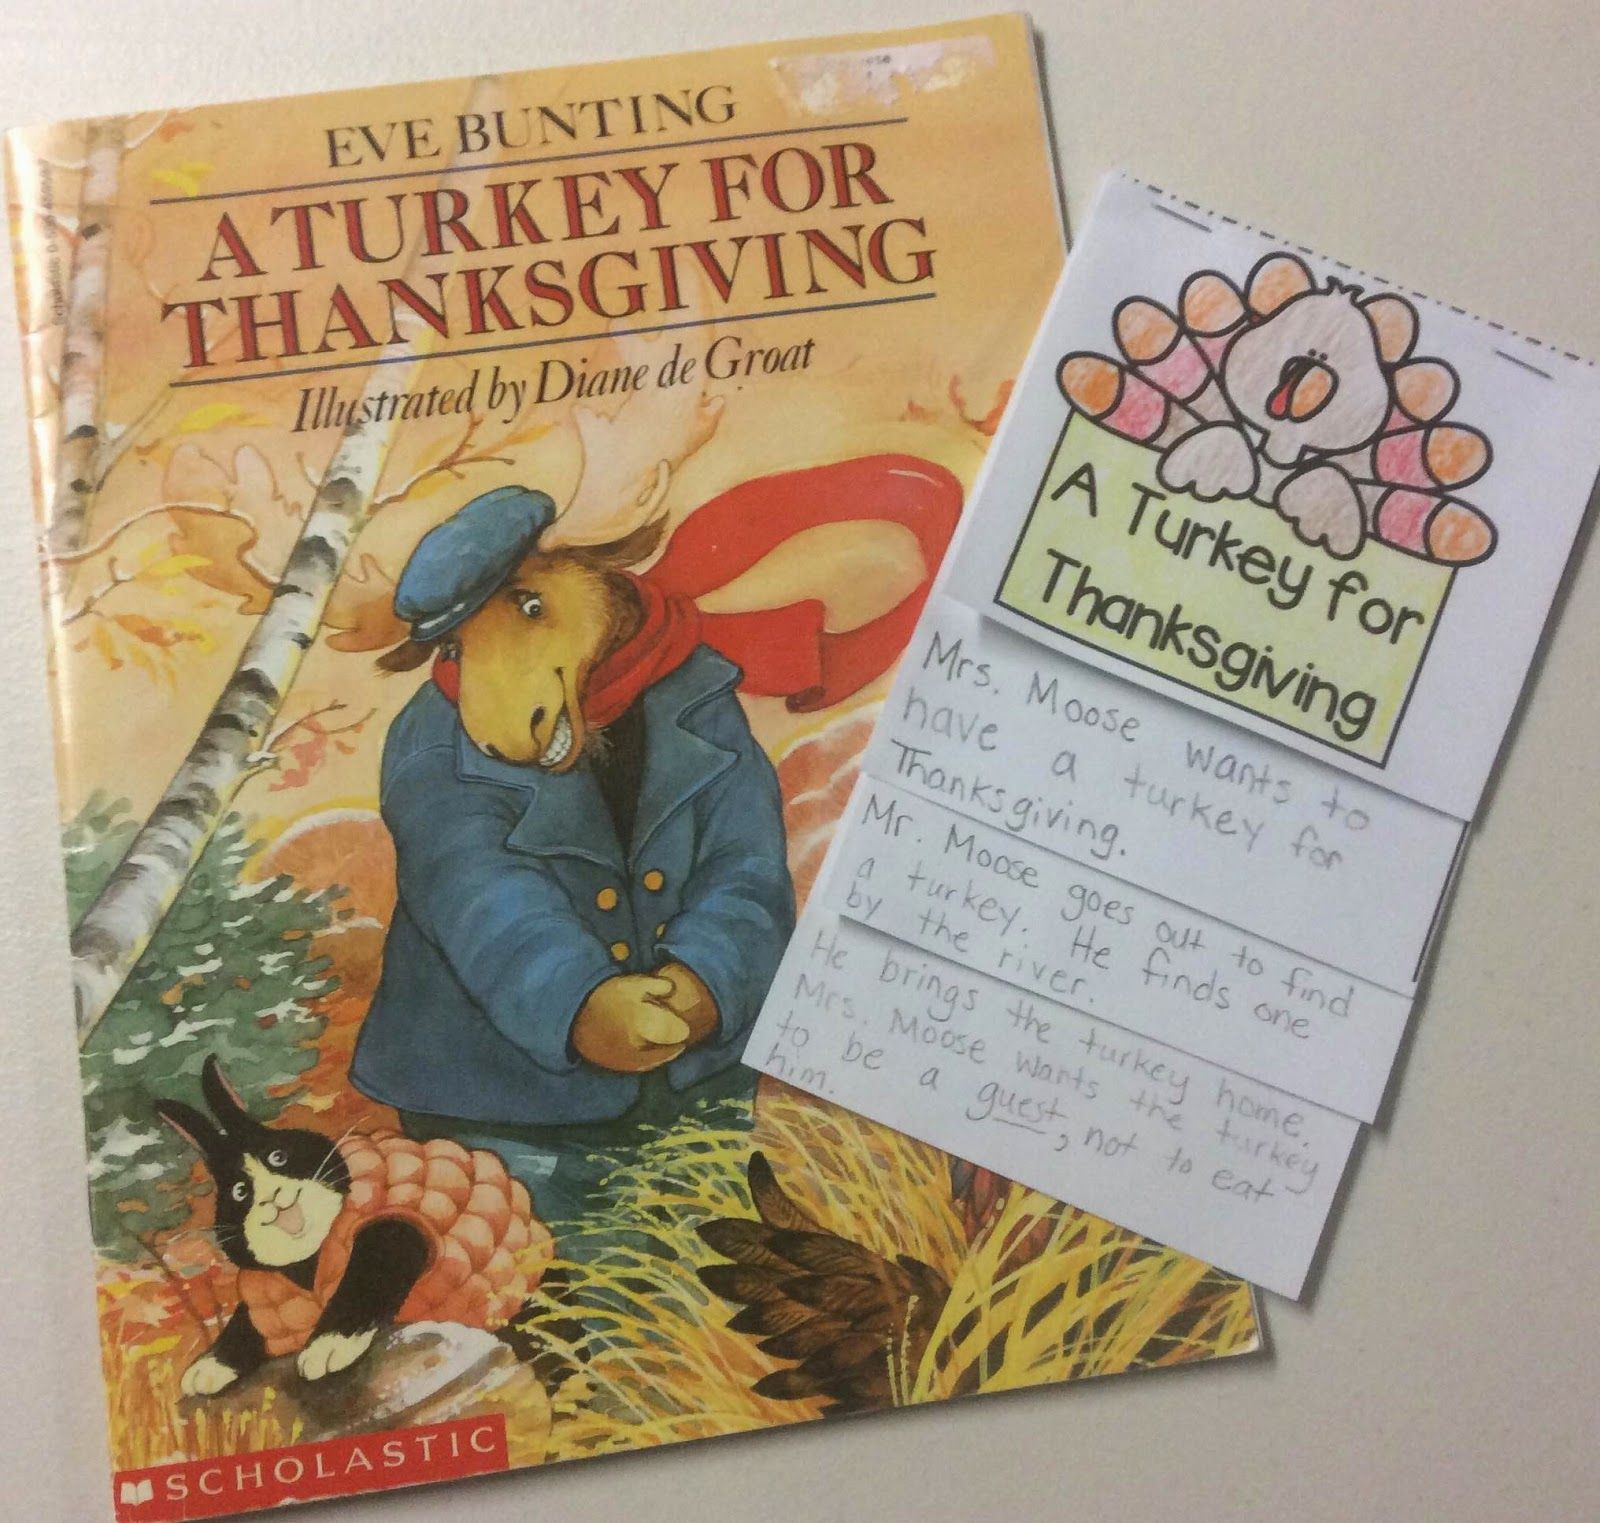 Ideas For The Week Of Thanksgiving Retelling The Story A Turkey For Thanksgiving By Eve Bunting